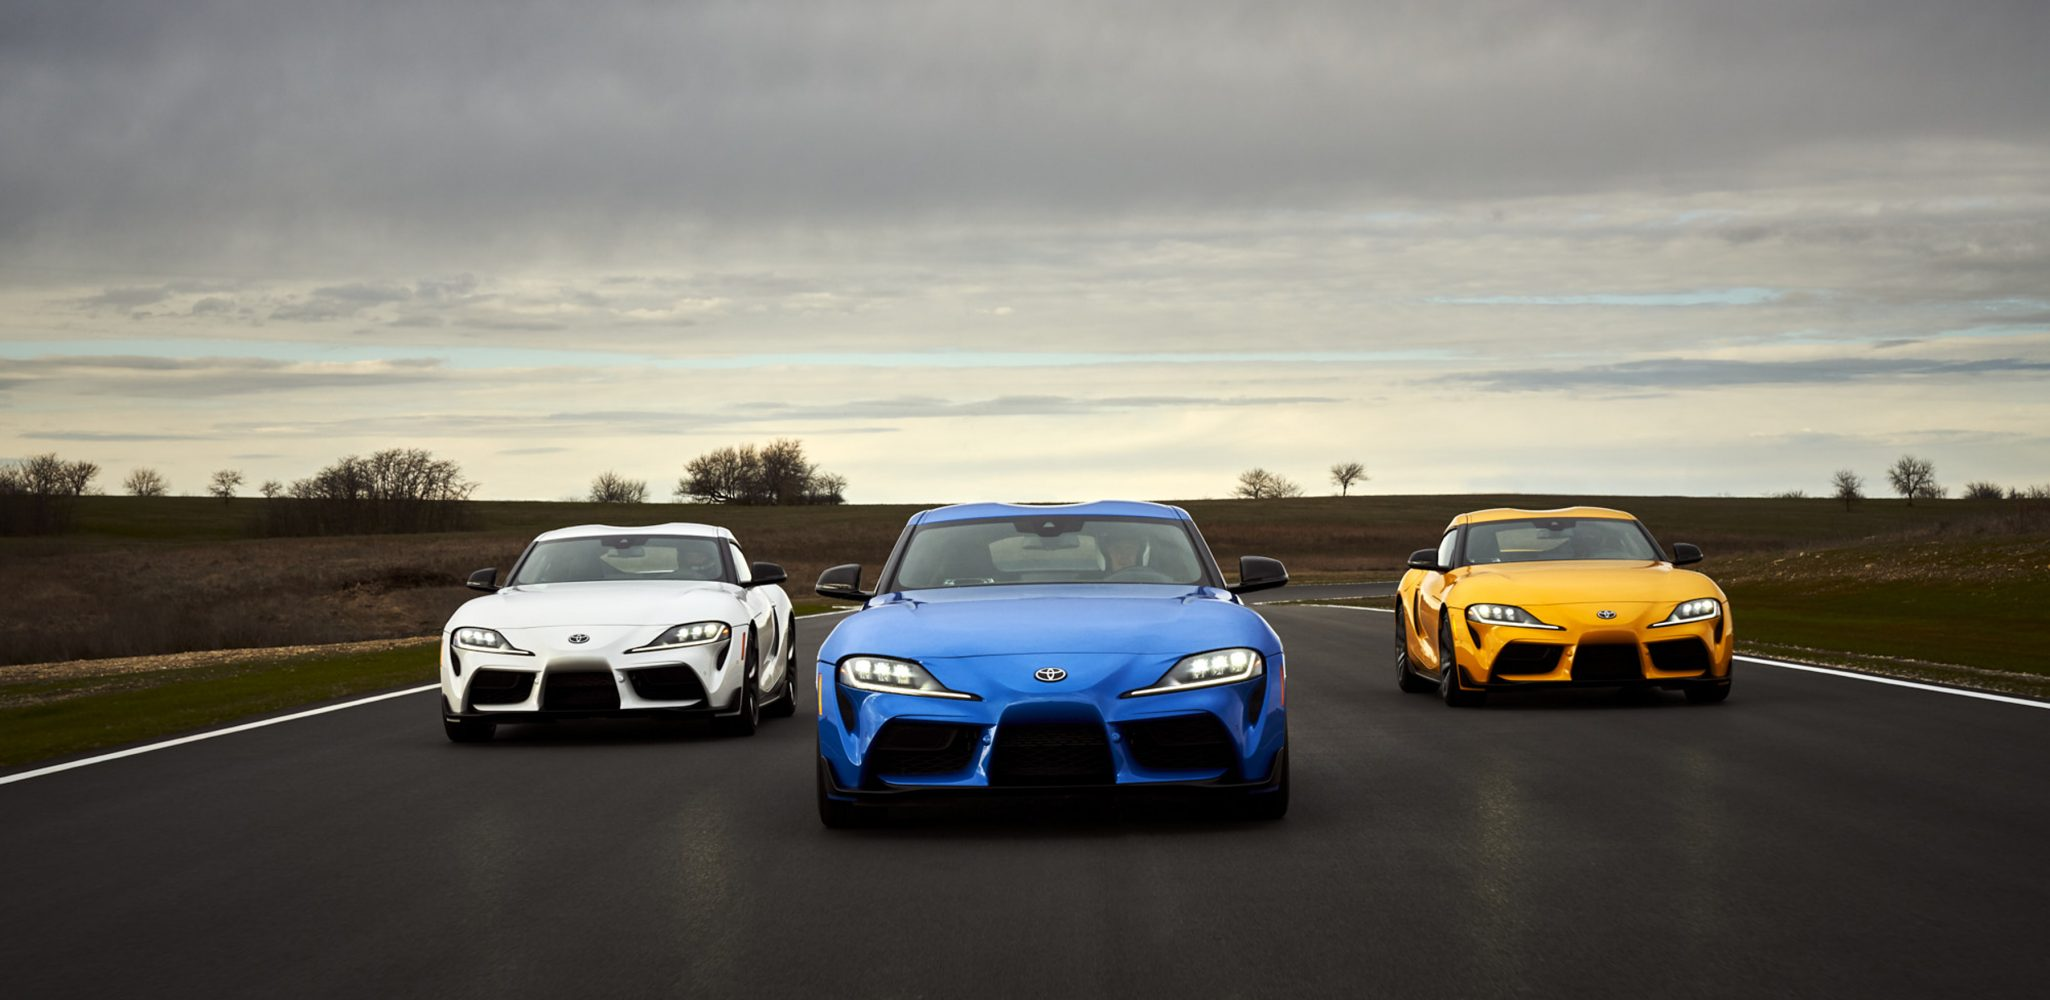 Toyota GR Supra Races Into 2021 with More Power and First-Ever Four-Cylinder Turbo Model